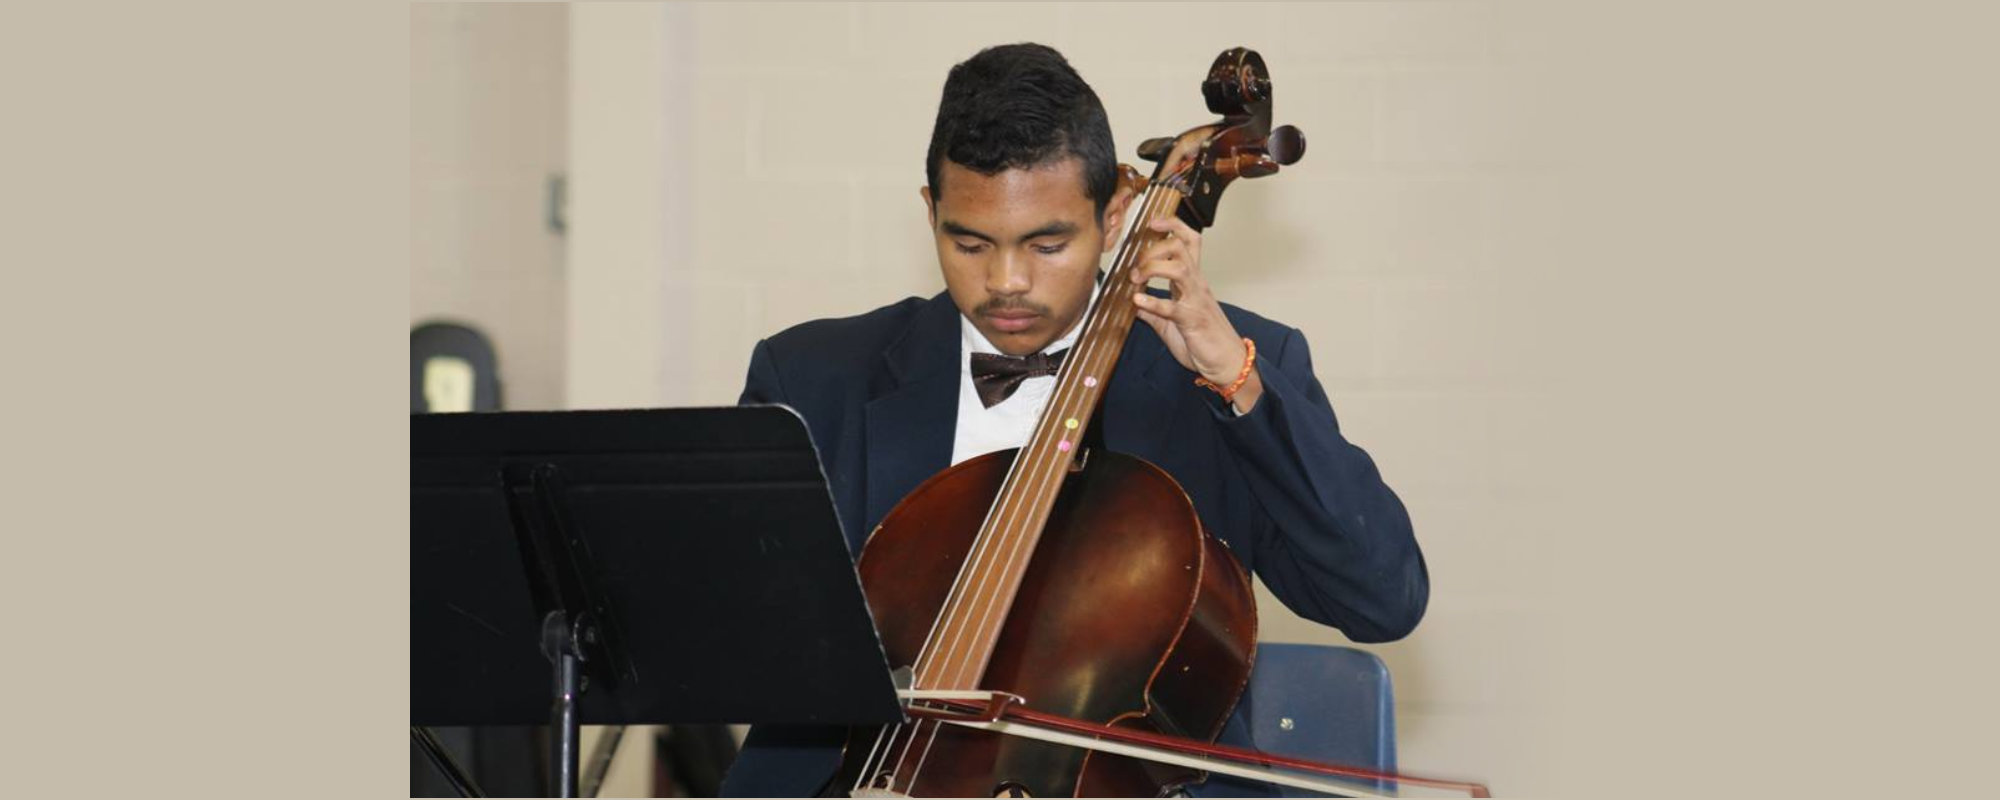 man playing the instrument